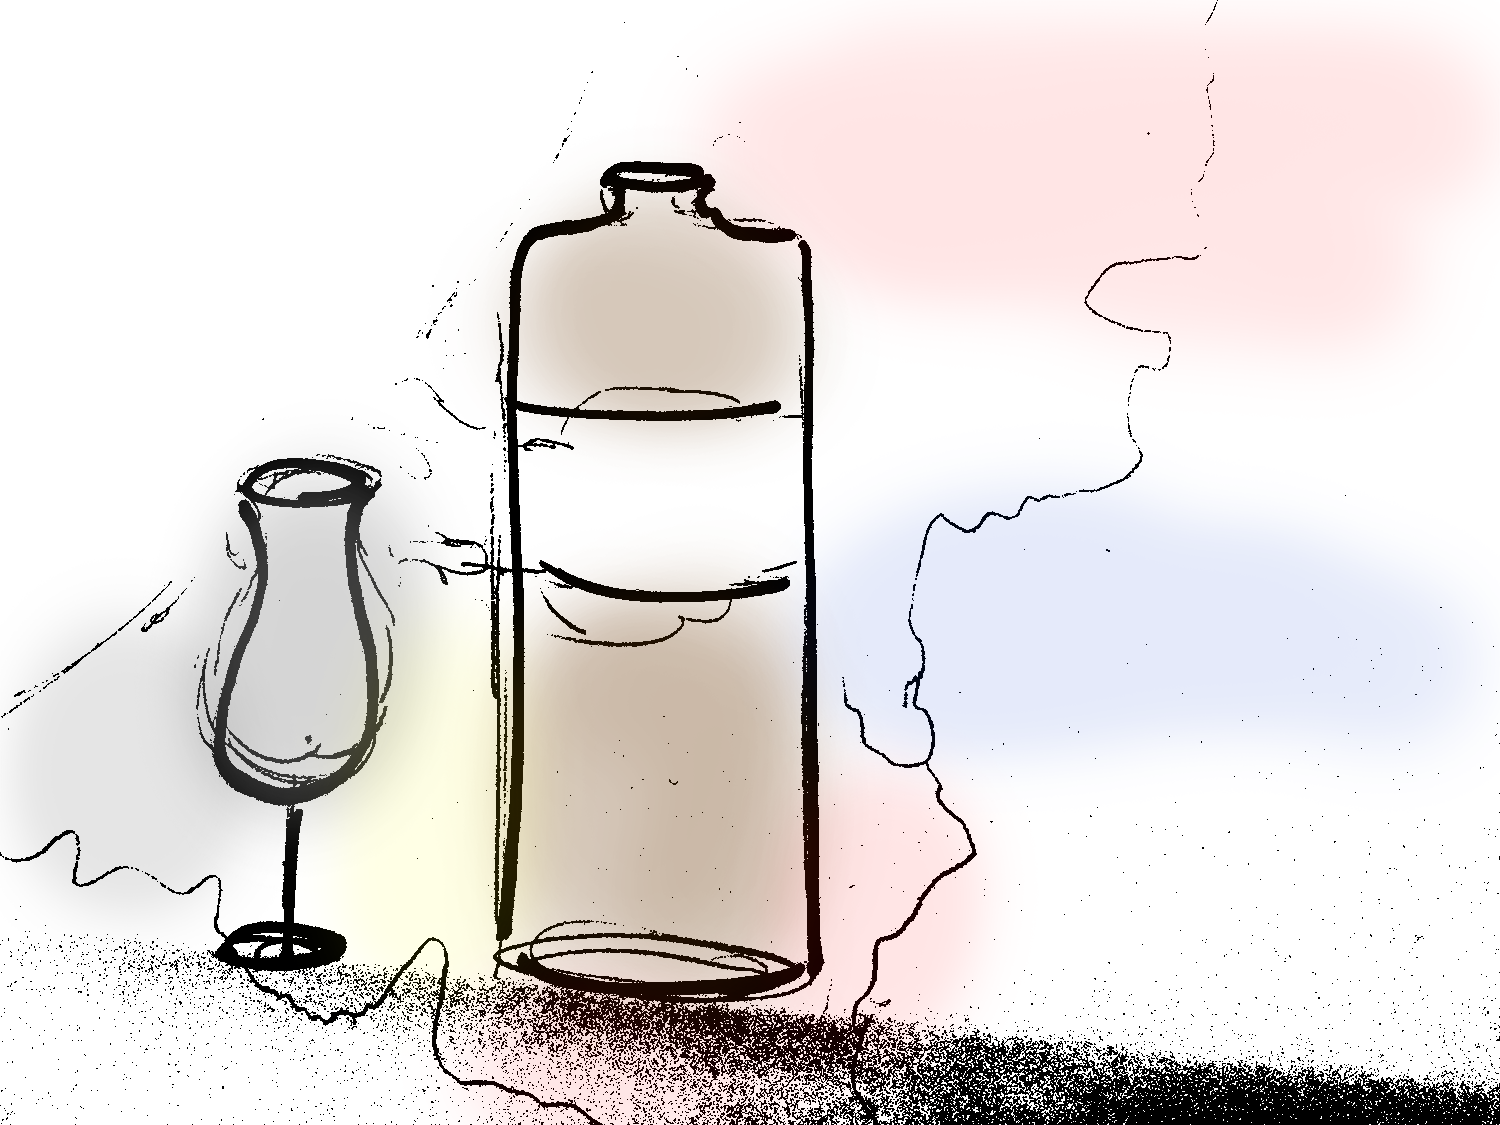 Jenever production is mostly in the Netherlands and in Belgium